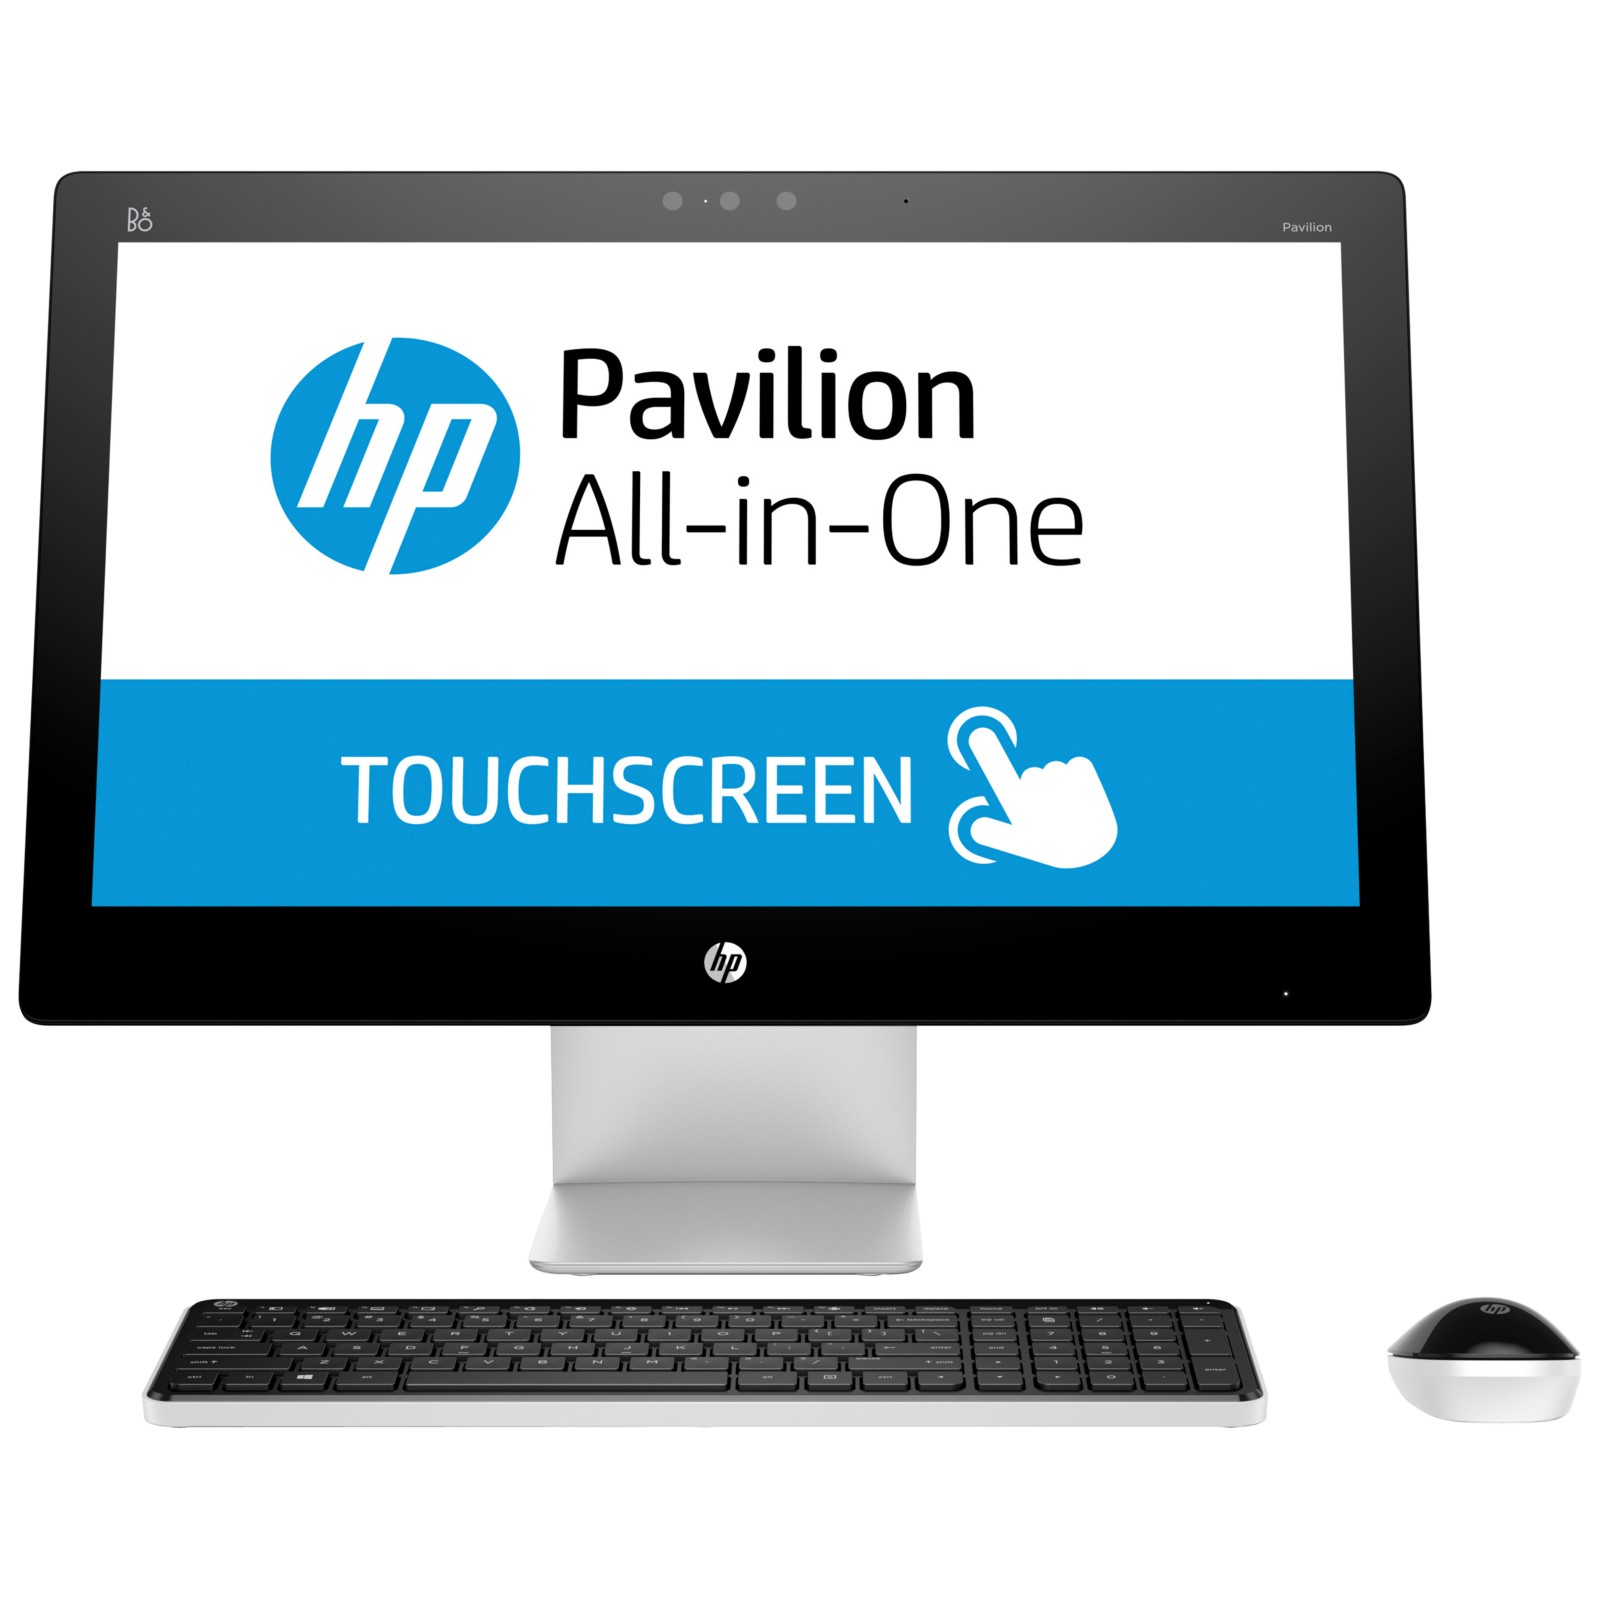 HP Pavilion 23-Q111na All-in-One Desktop PC